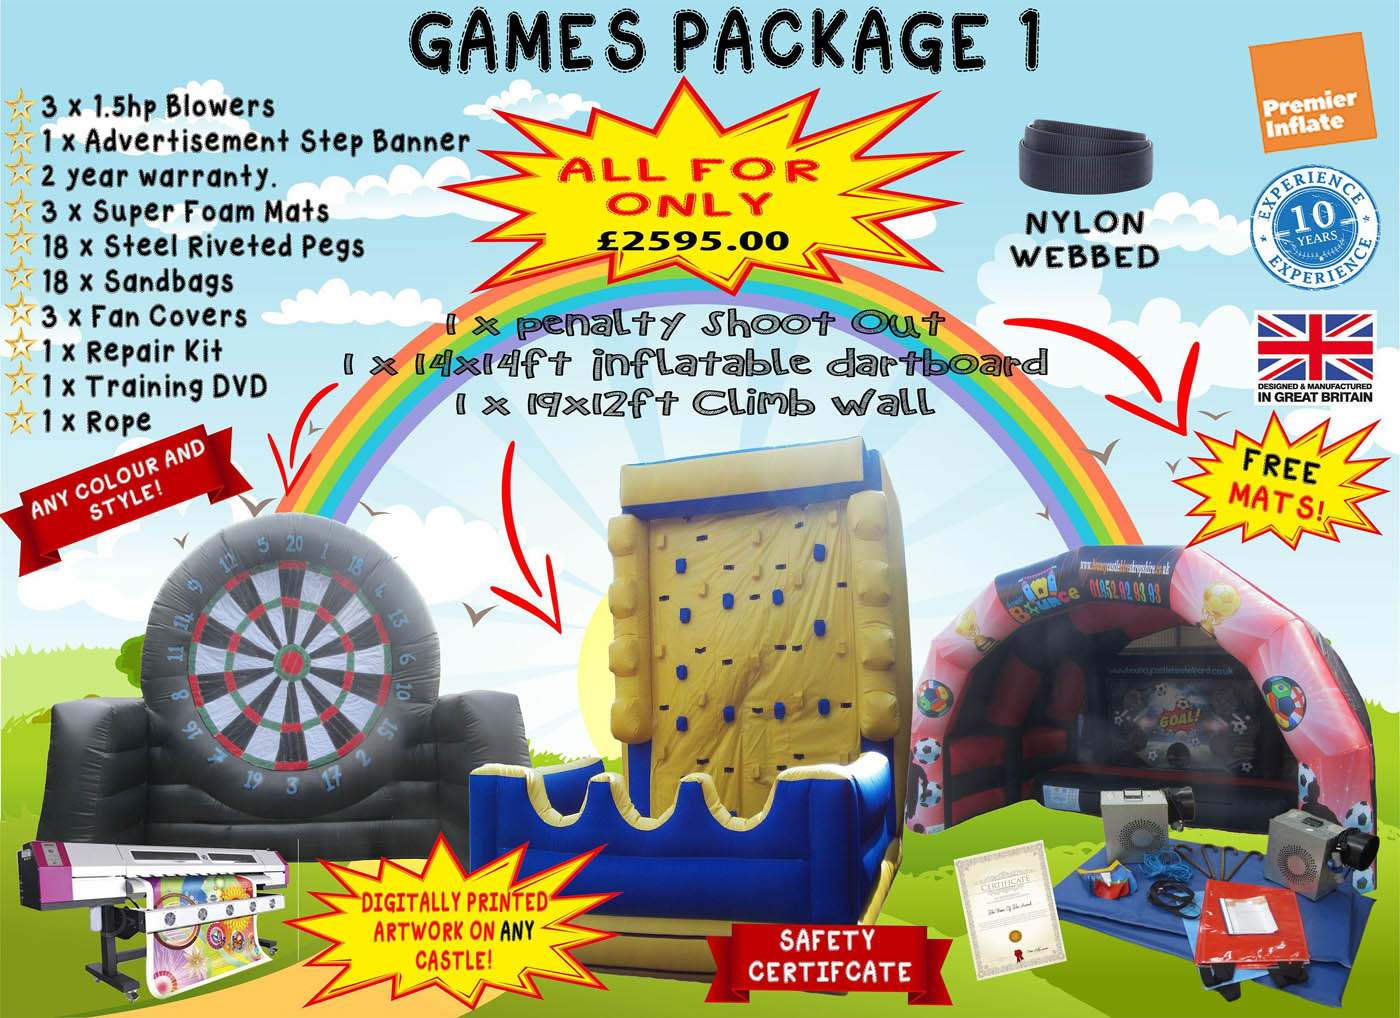 Bouncy Castle Package Deals For Sale | Premier Inflate - Premier Inflate